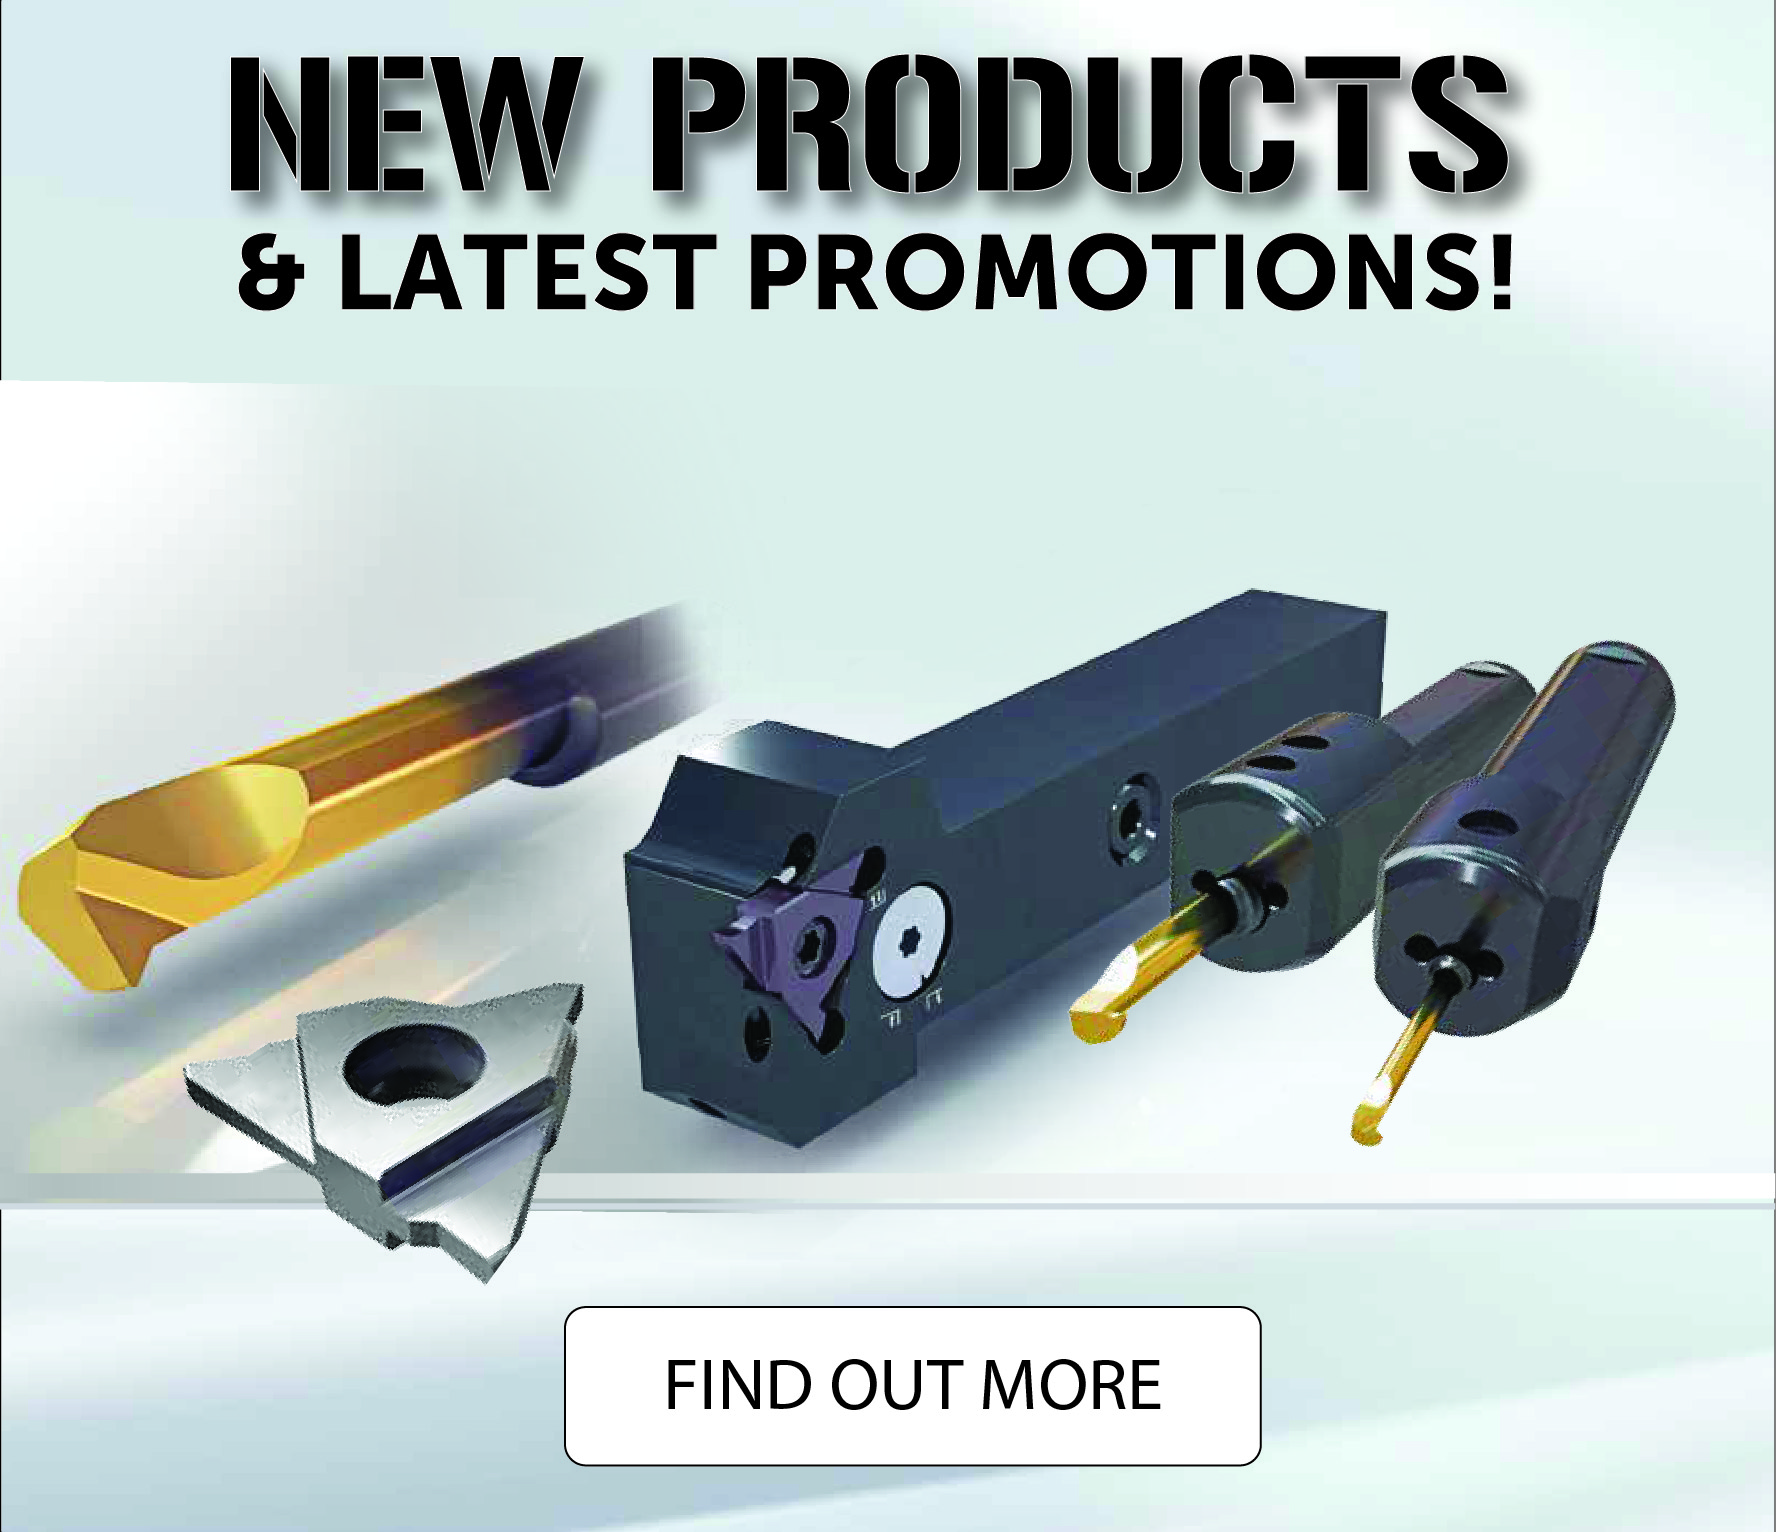 New products latest promo